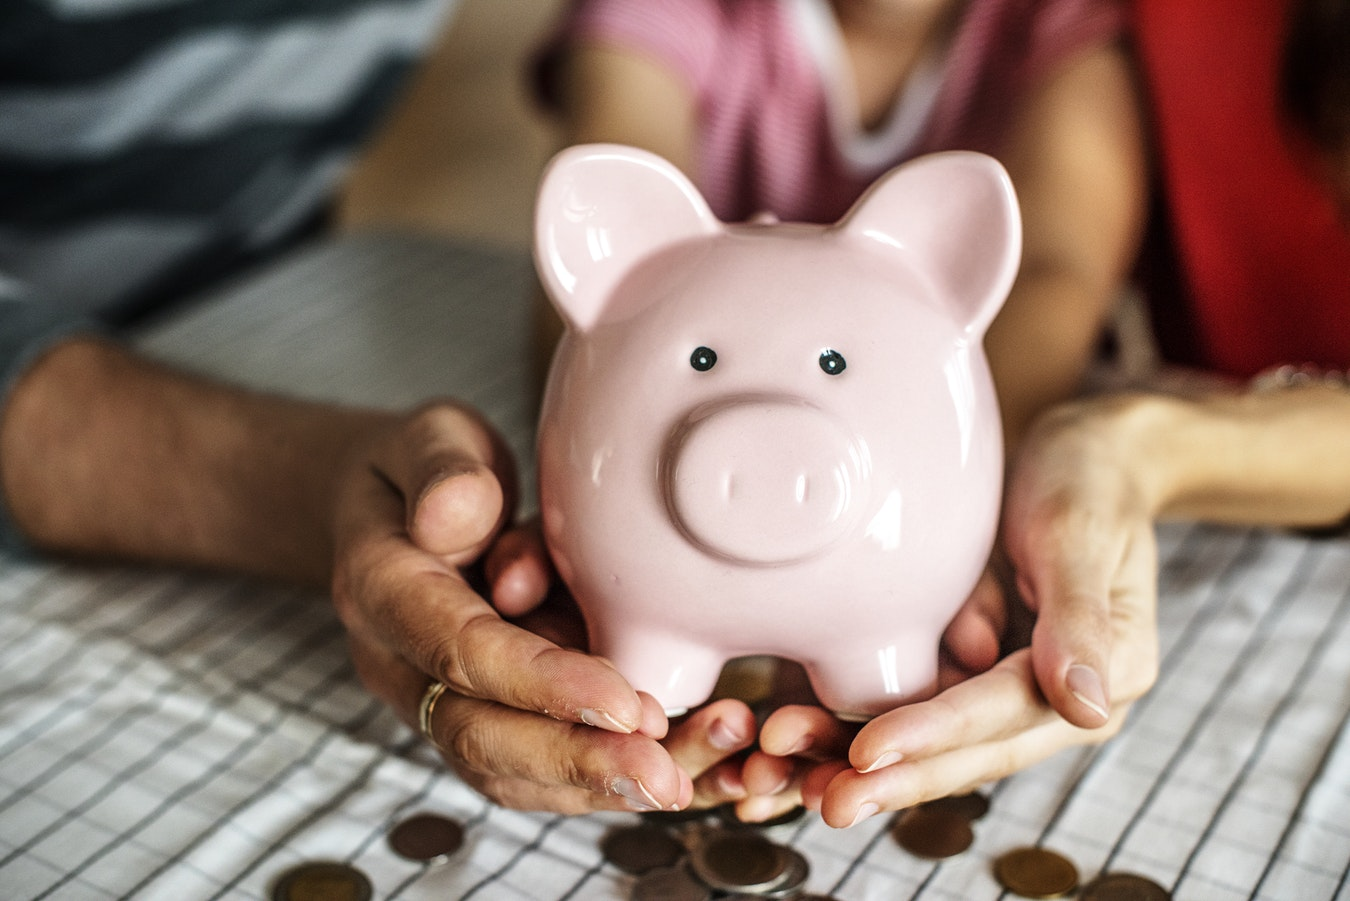 Are you financially diligent? Find out by answering our simple quiz.